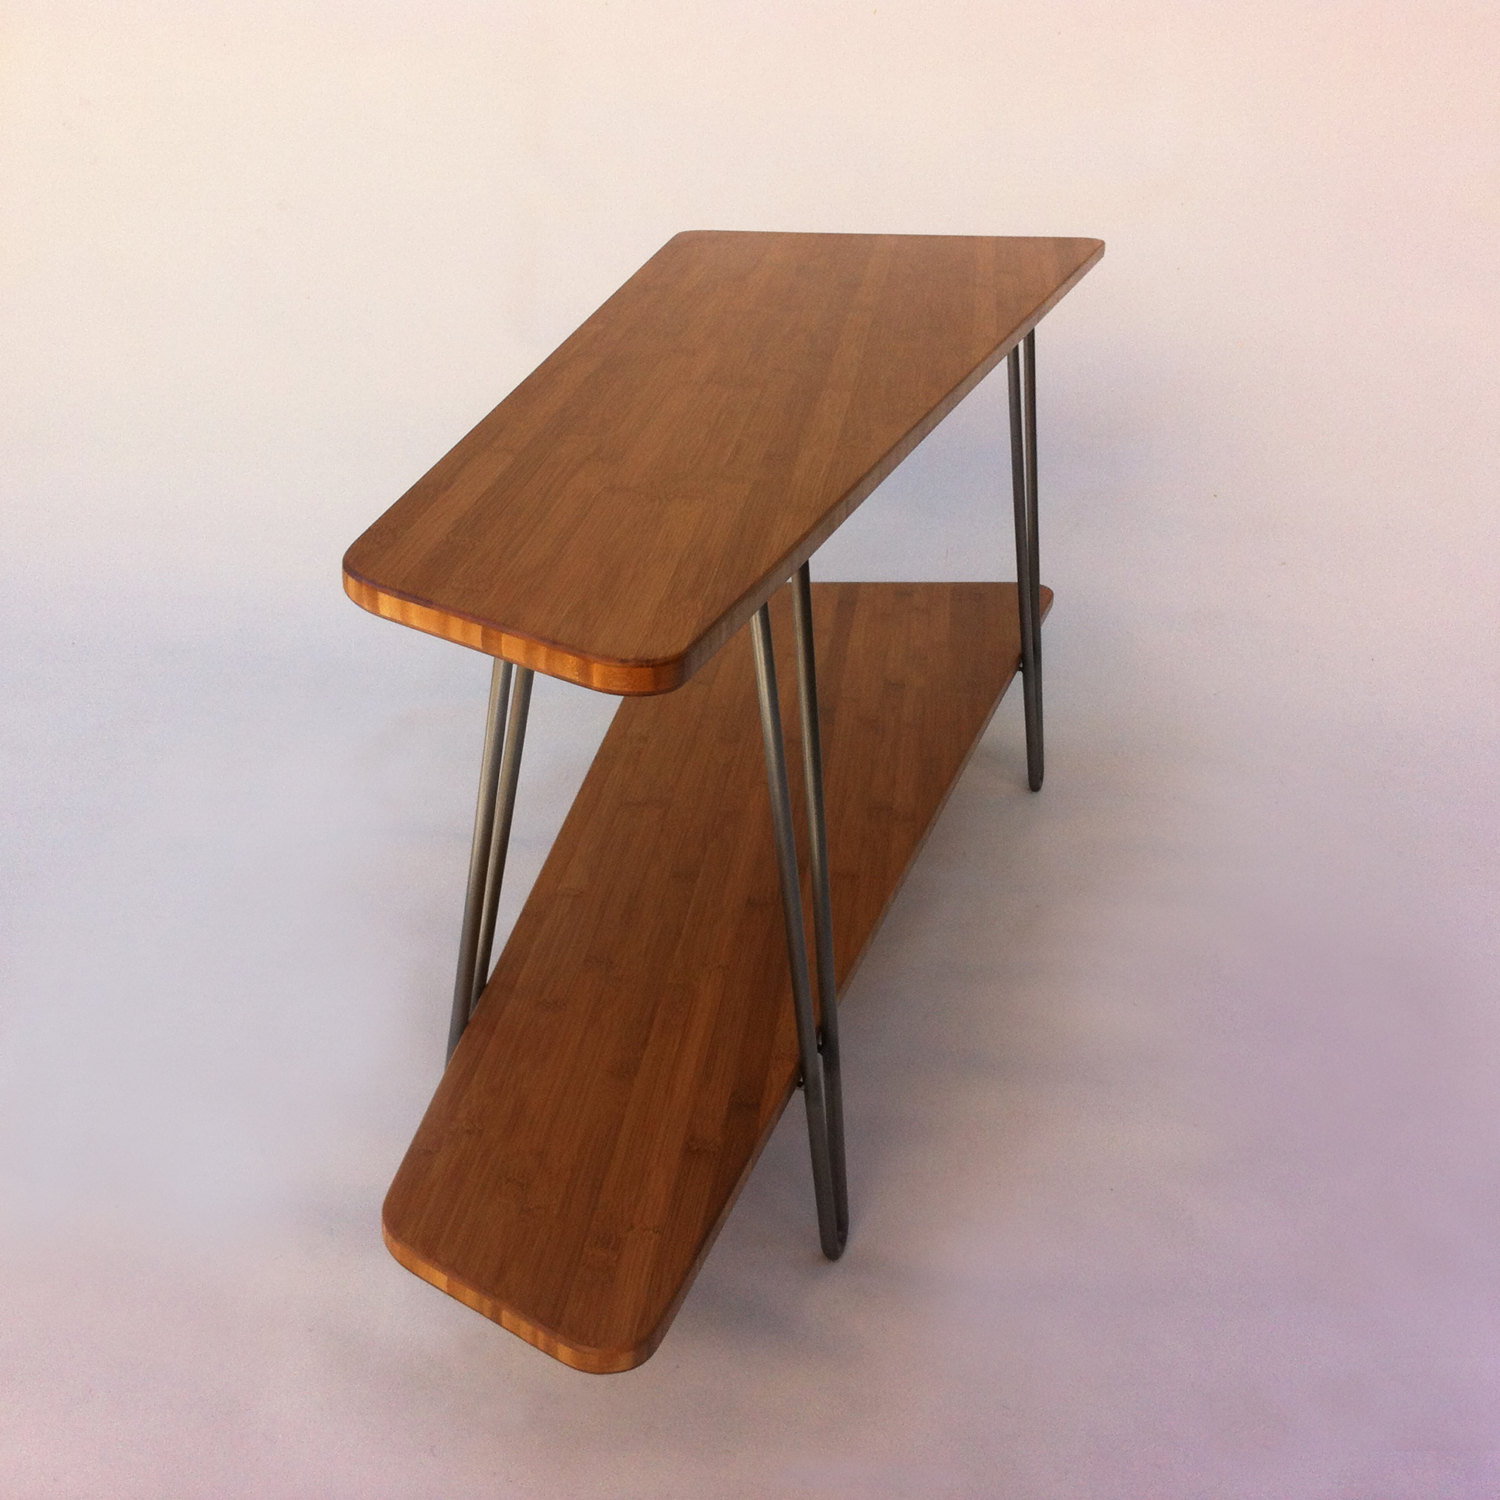 mid century modern tv stand media console with shelf u2013 low hall table in caramelized bamboo on hairpin legs